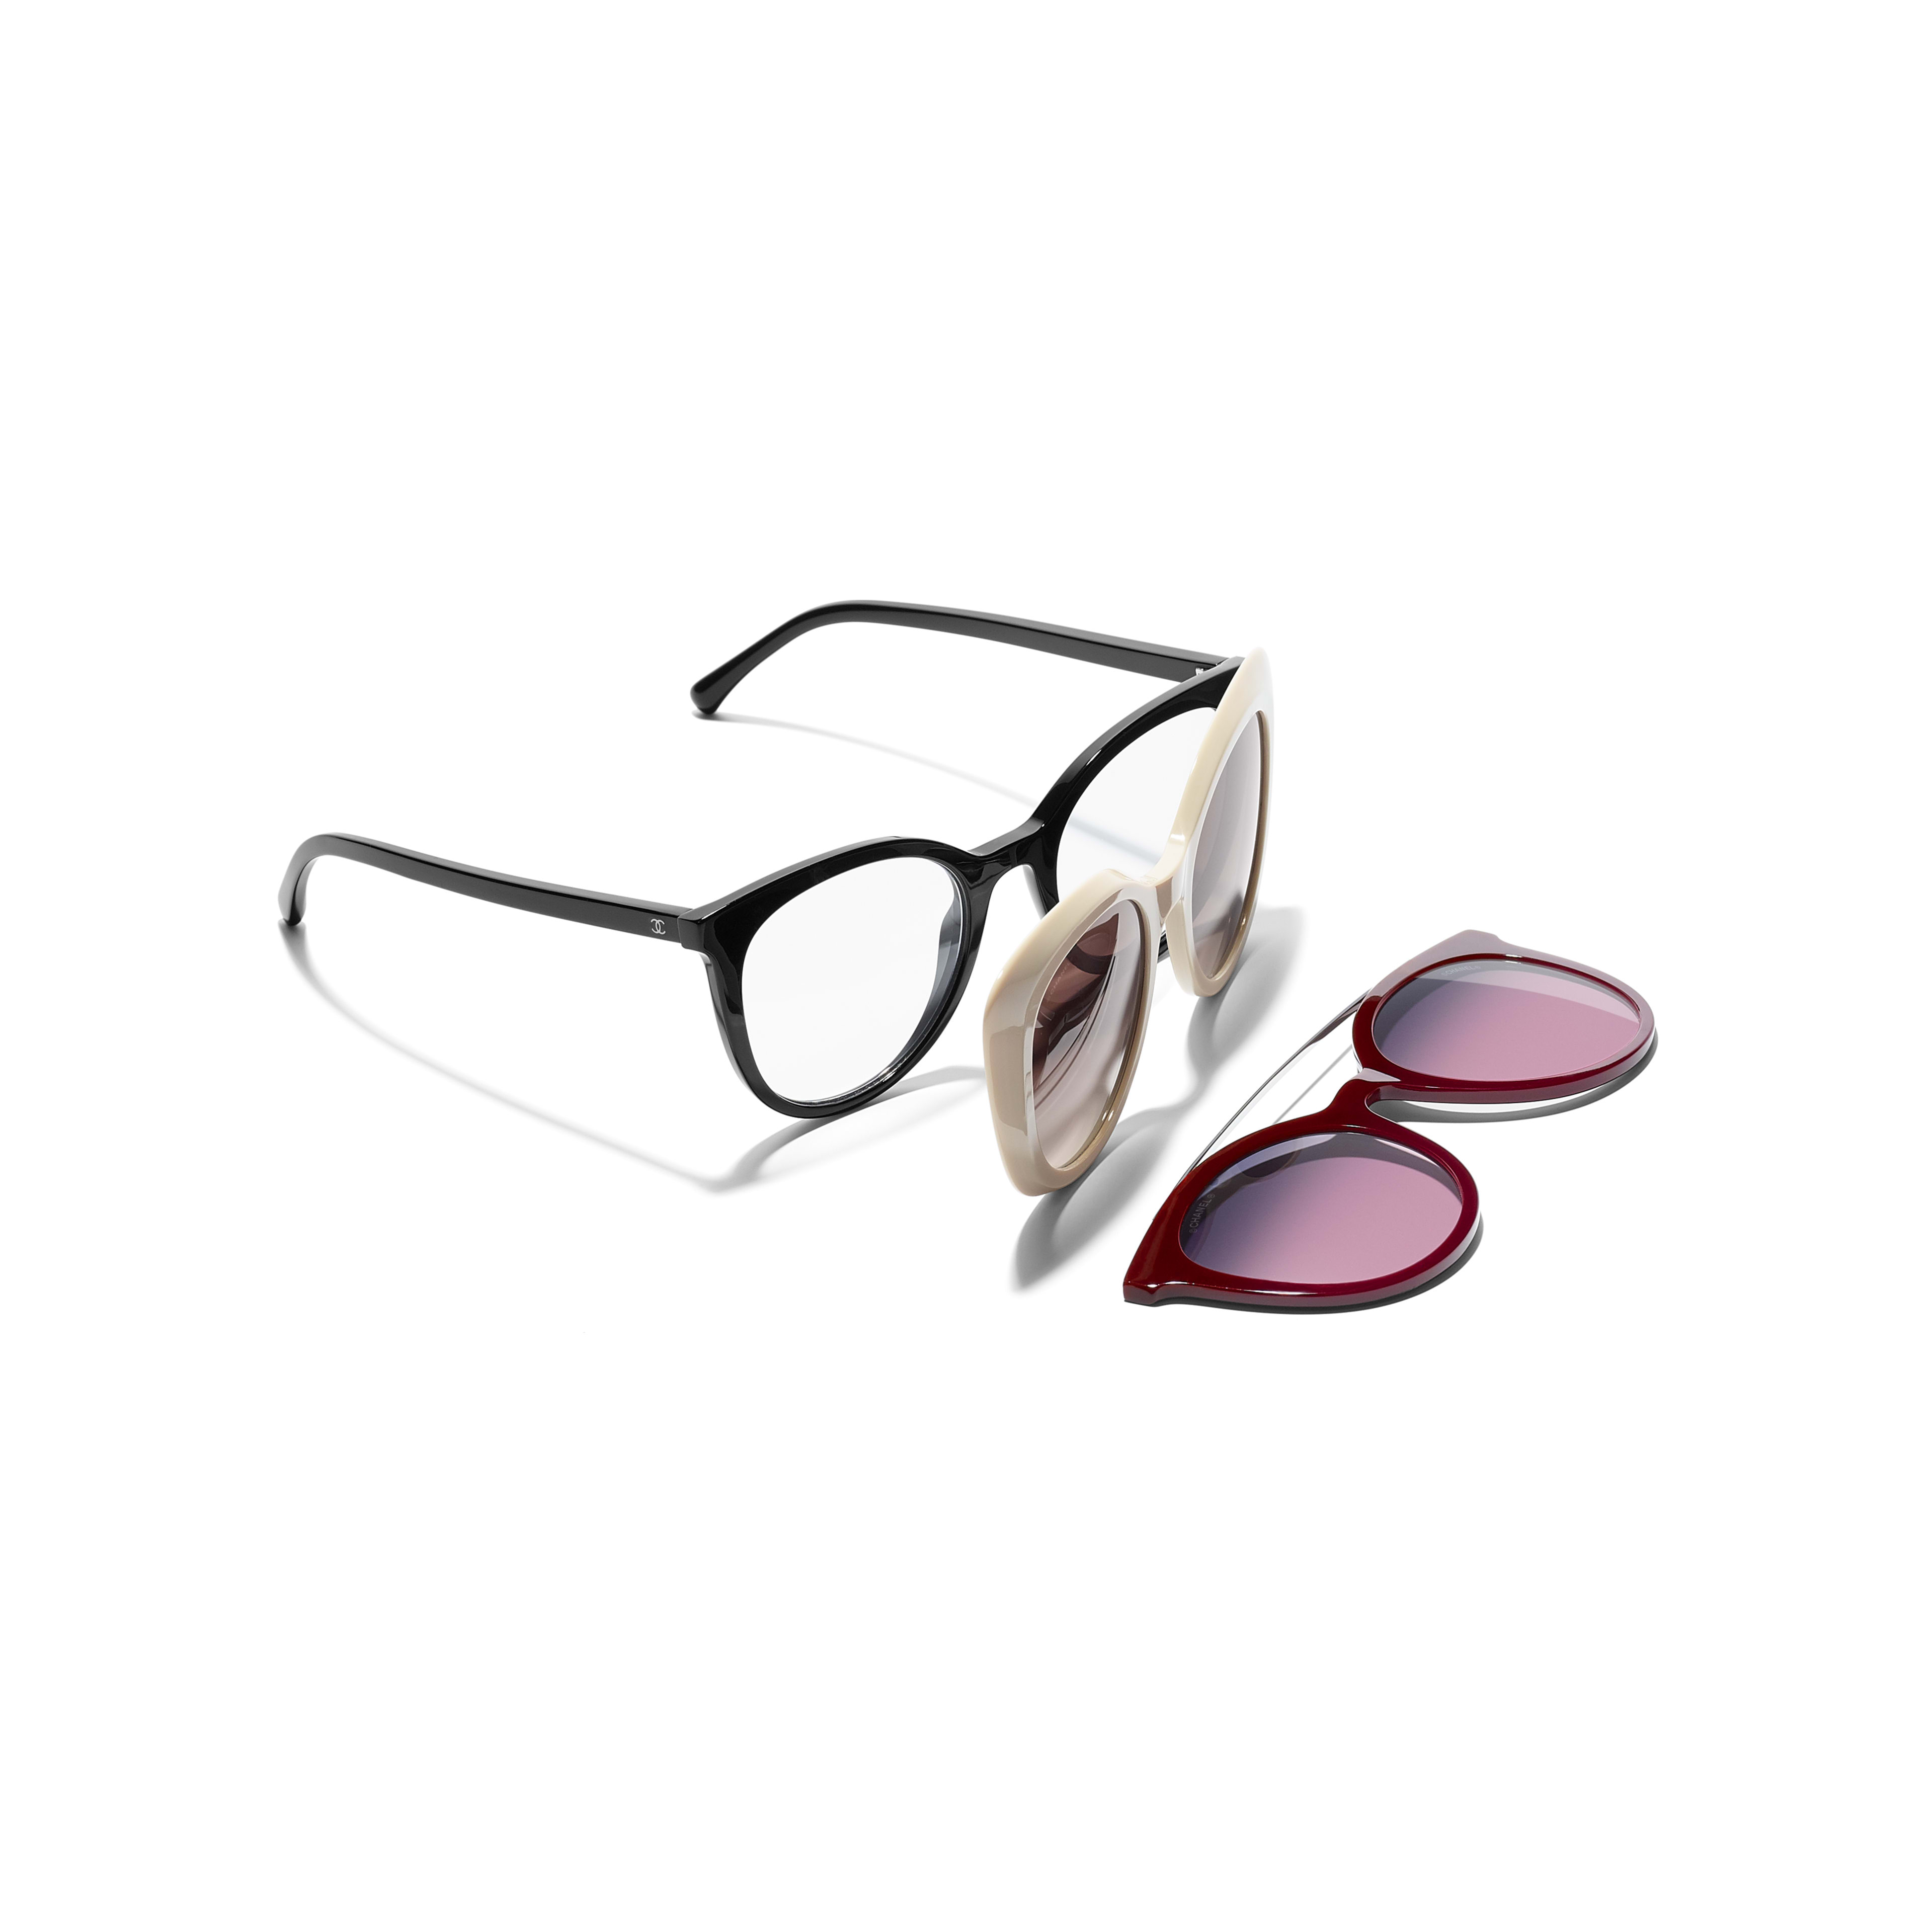 Clip on Sunglasses - Black - Acetate & Metal - Extra view - see full sized version